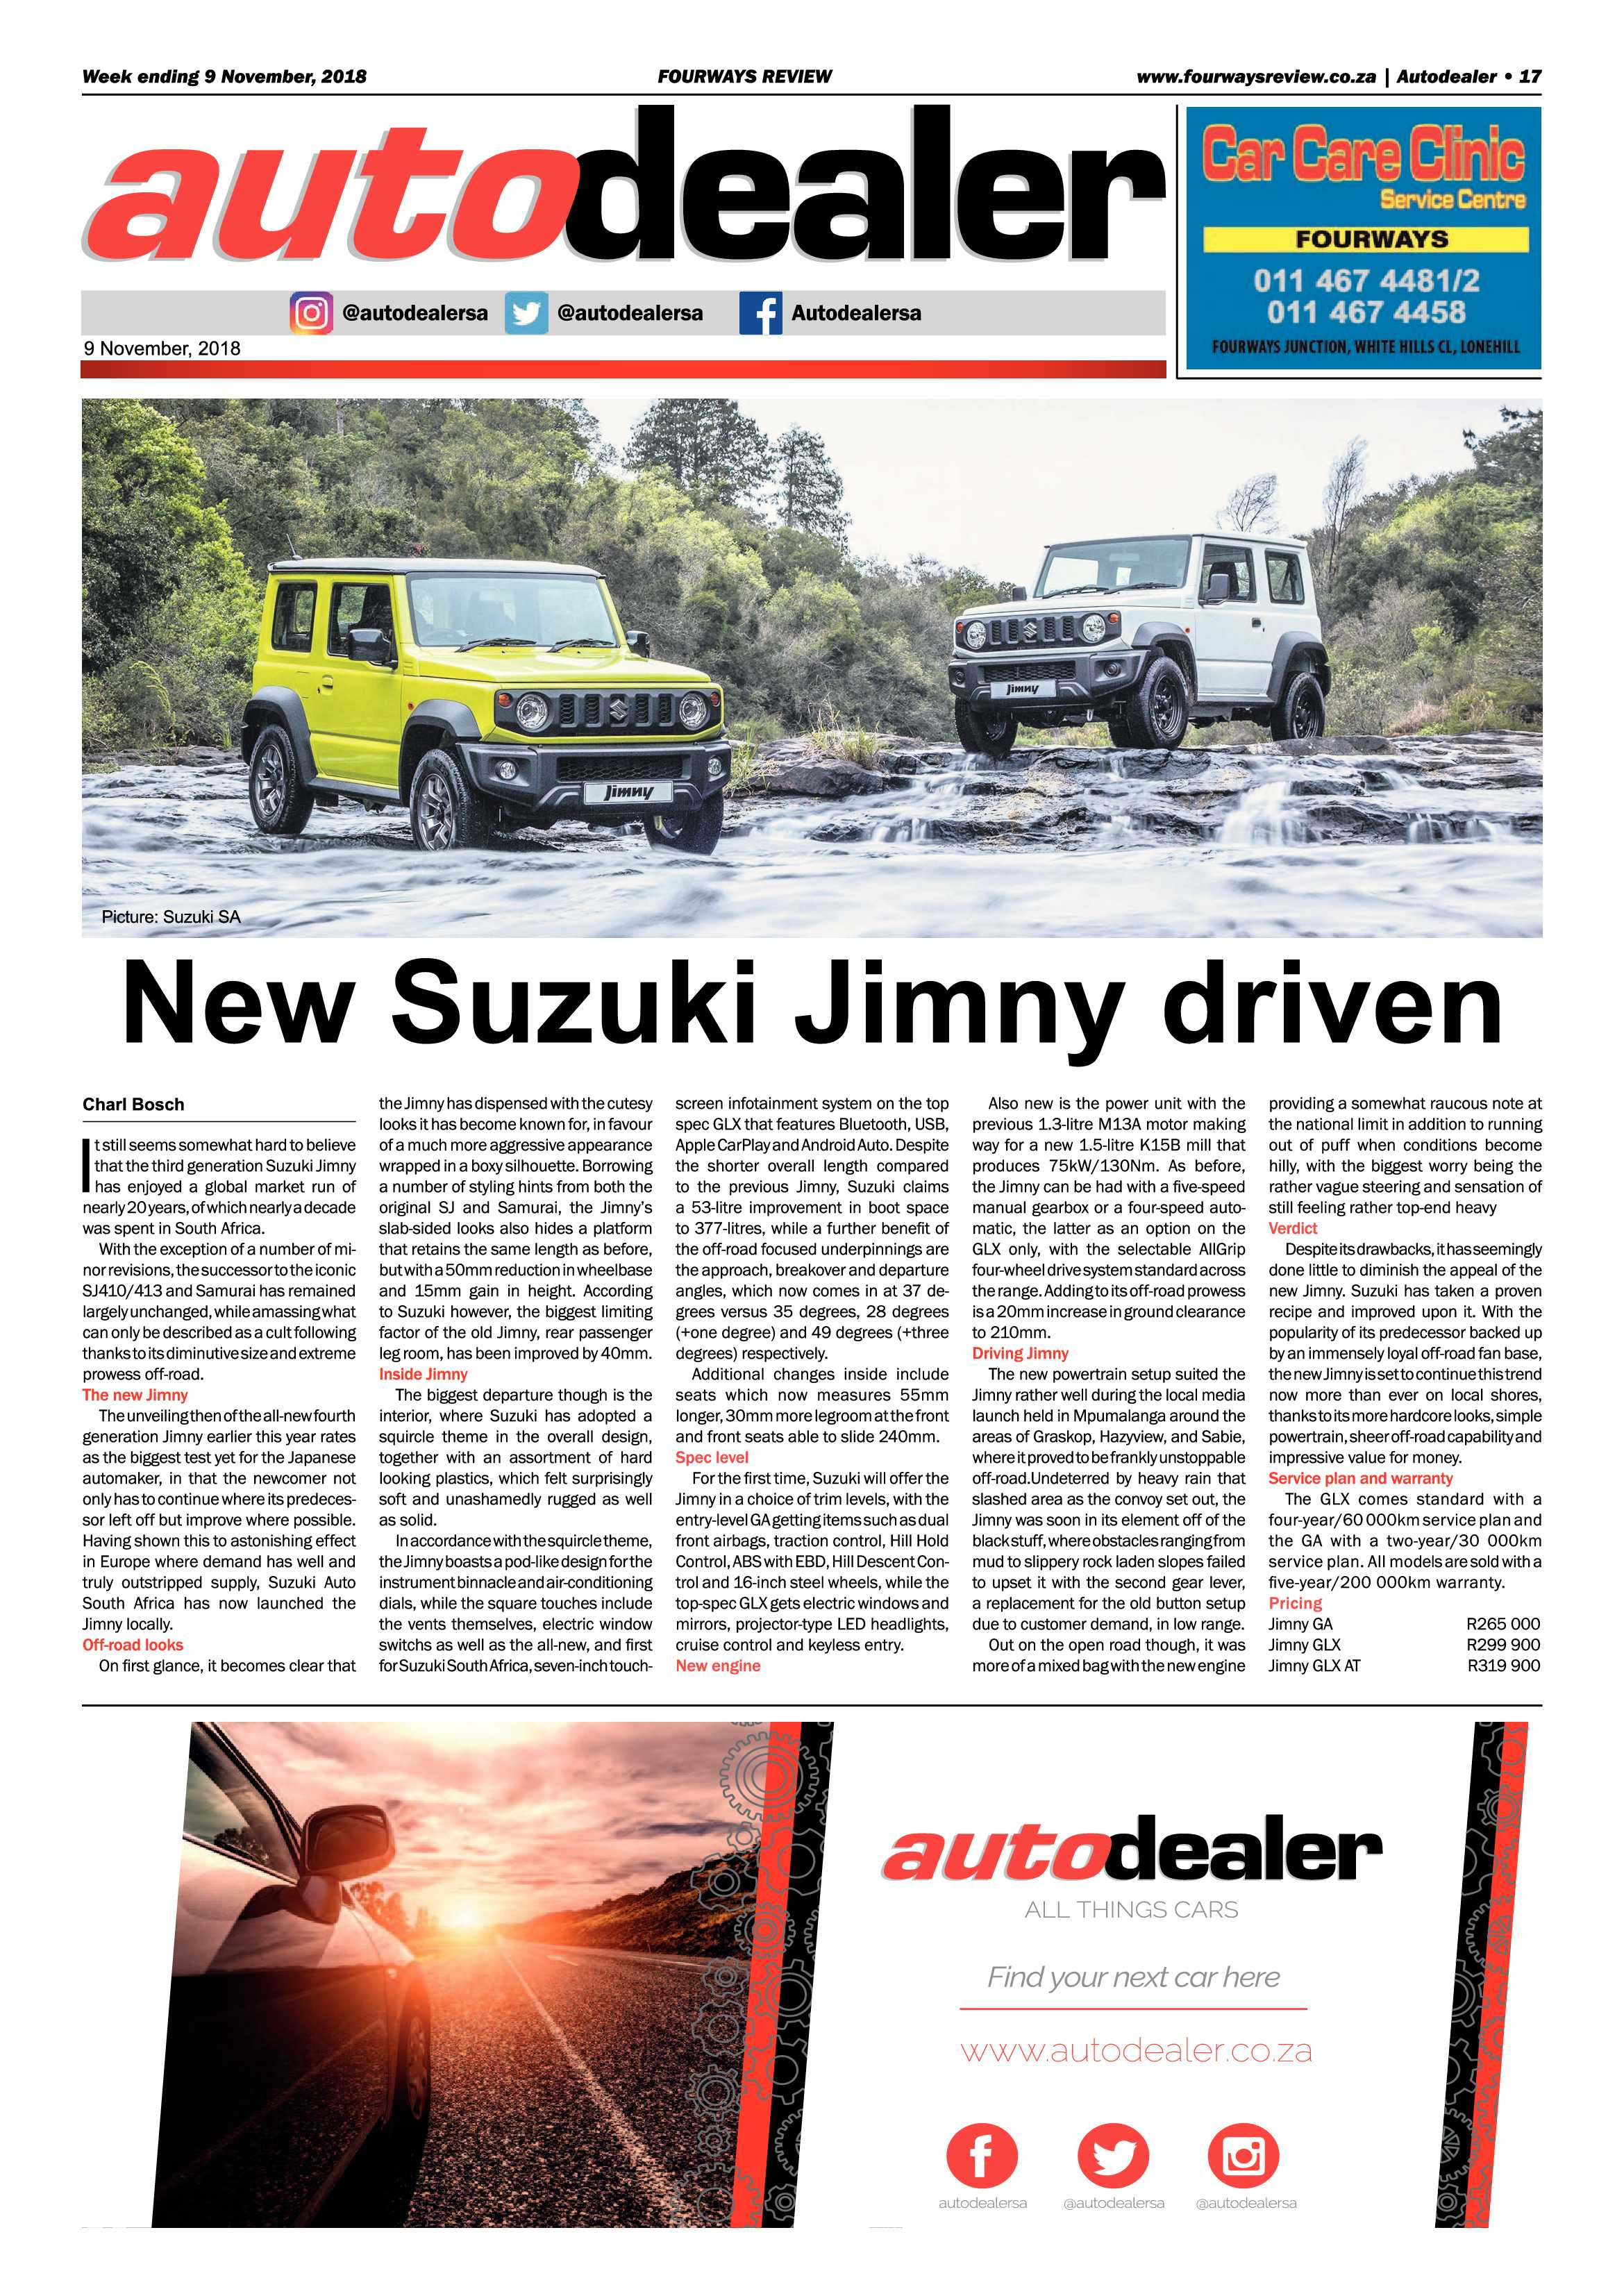 fourways-review-9-november-2018-epapers-page-17